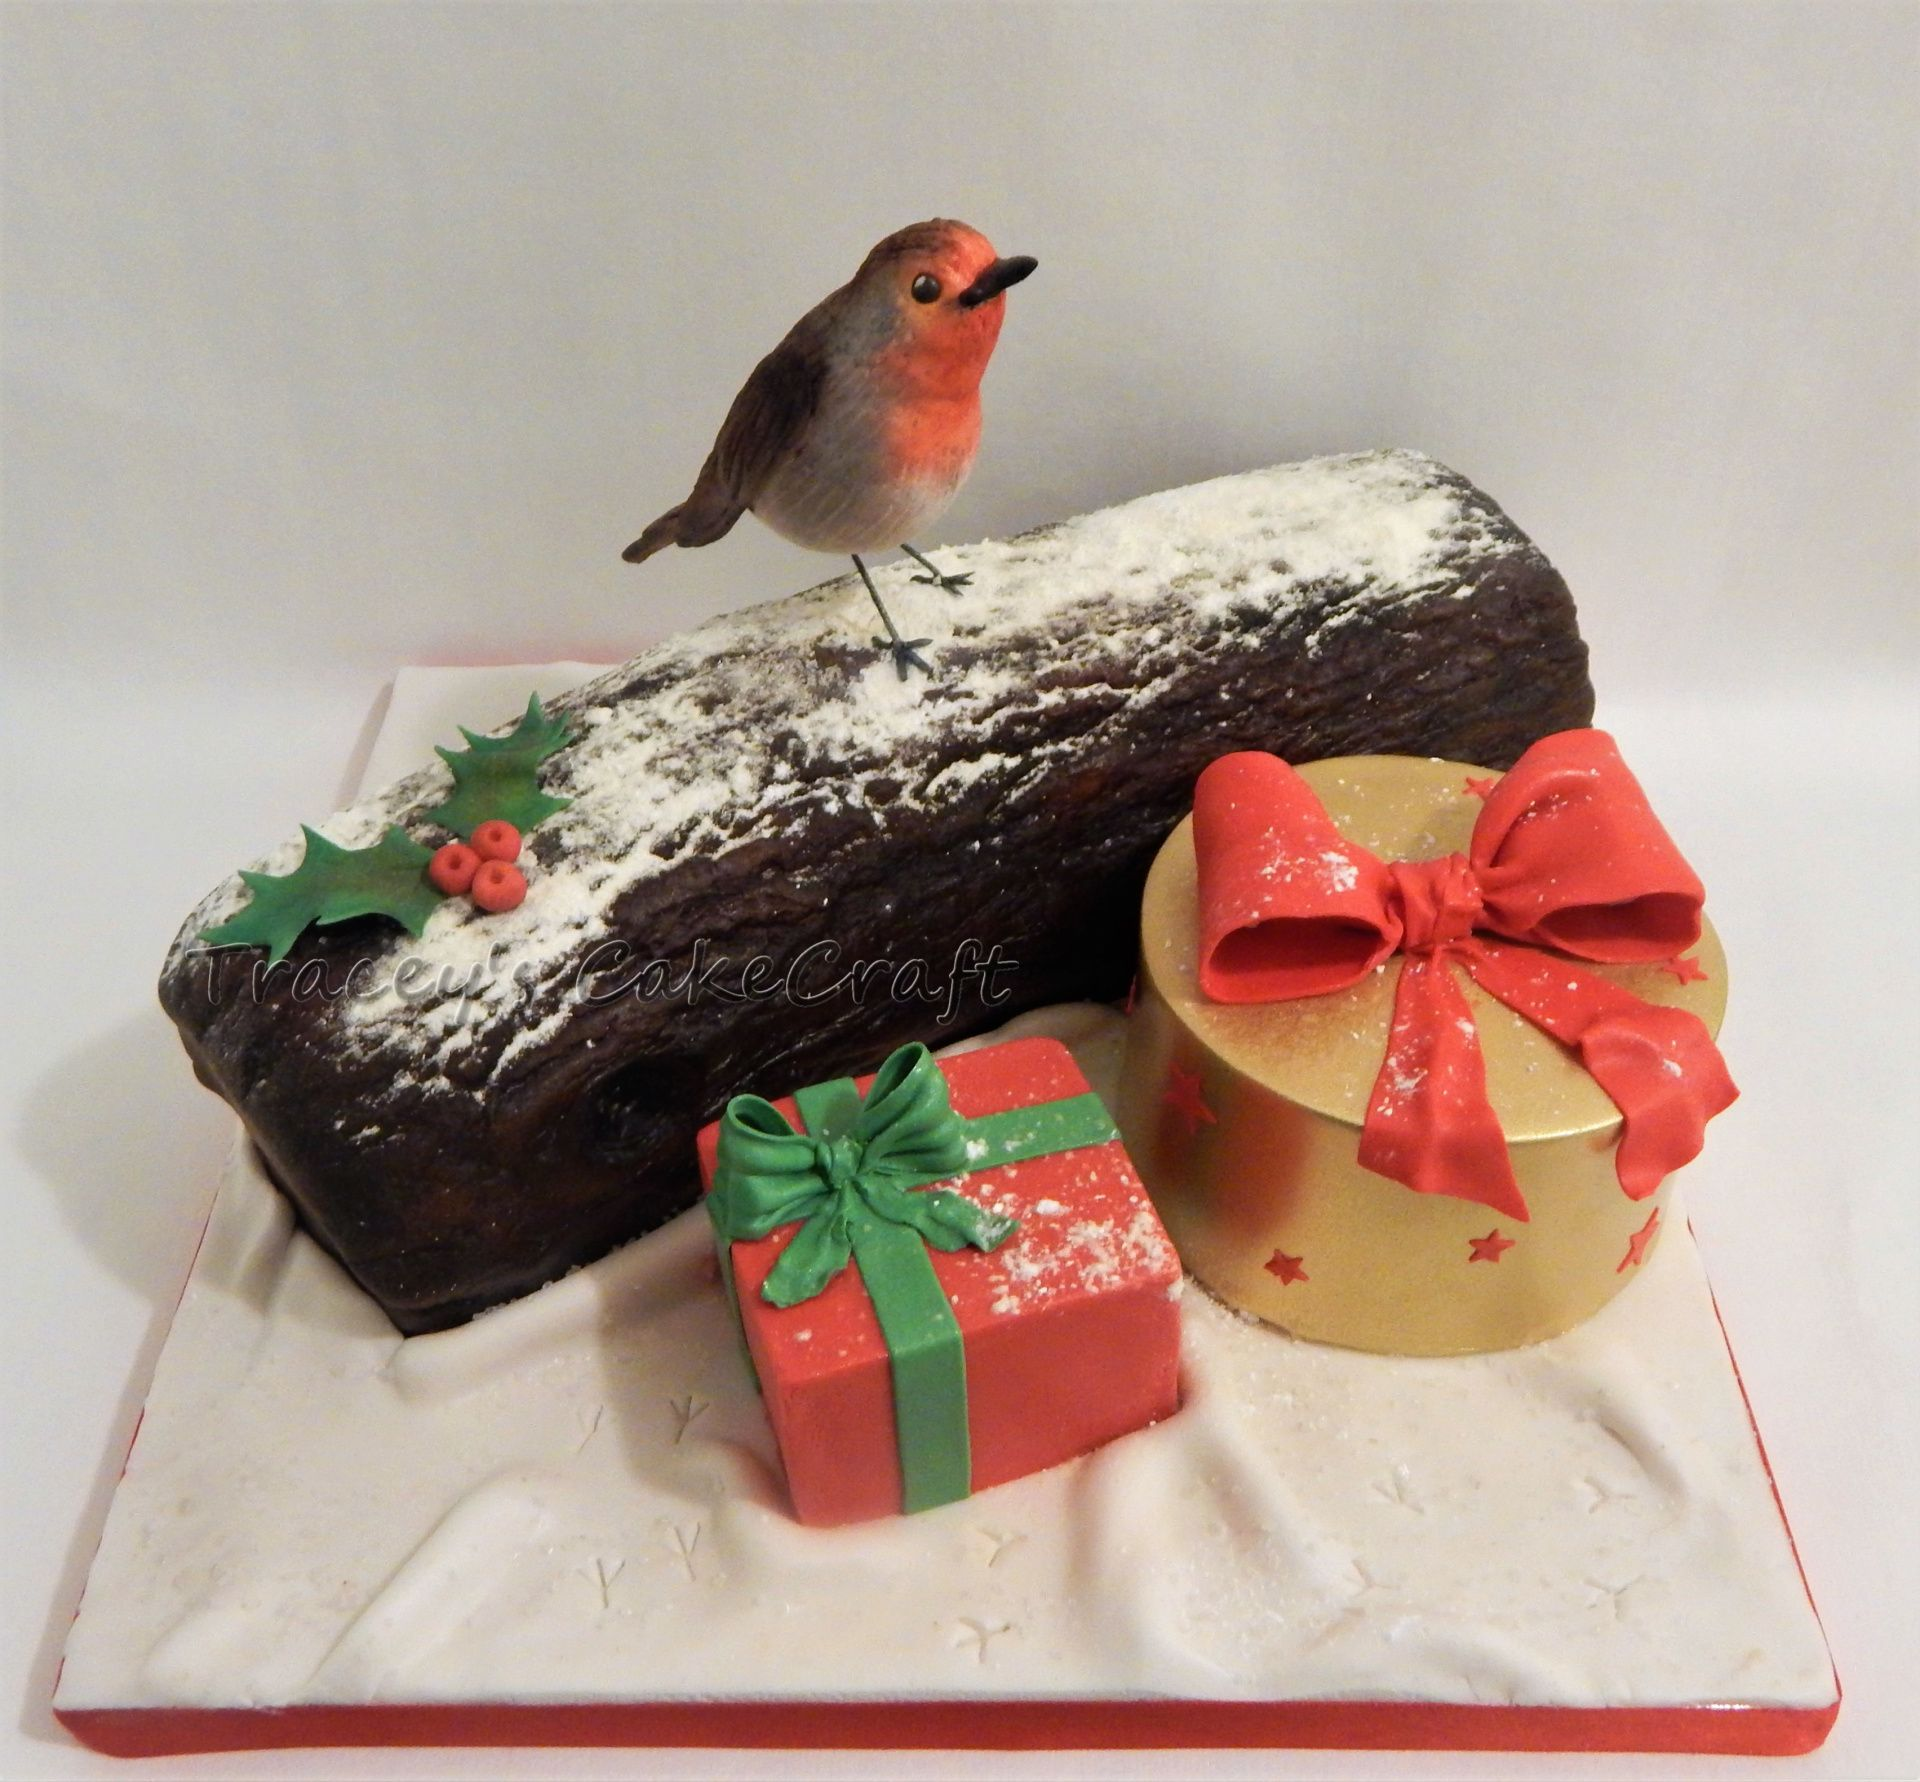 Chocolate Christmas log, cake presents and edible robin